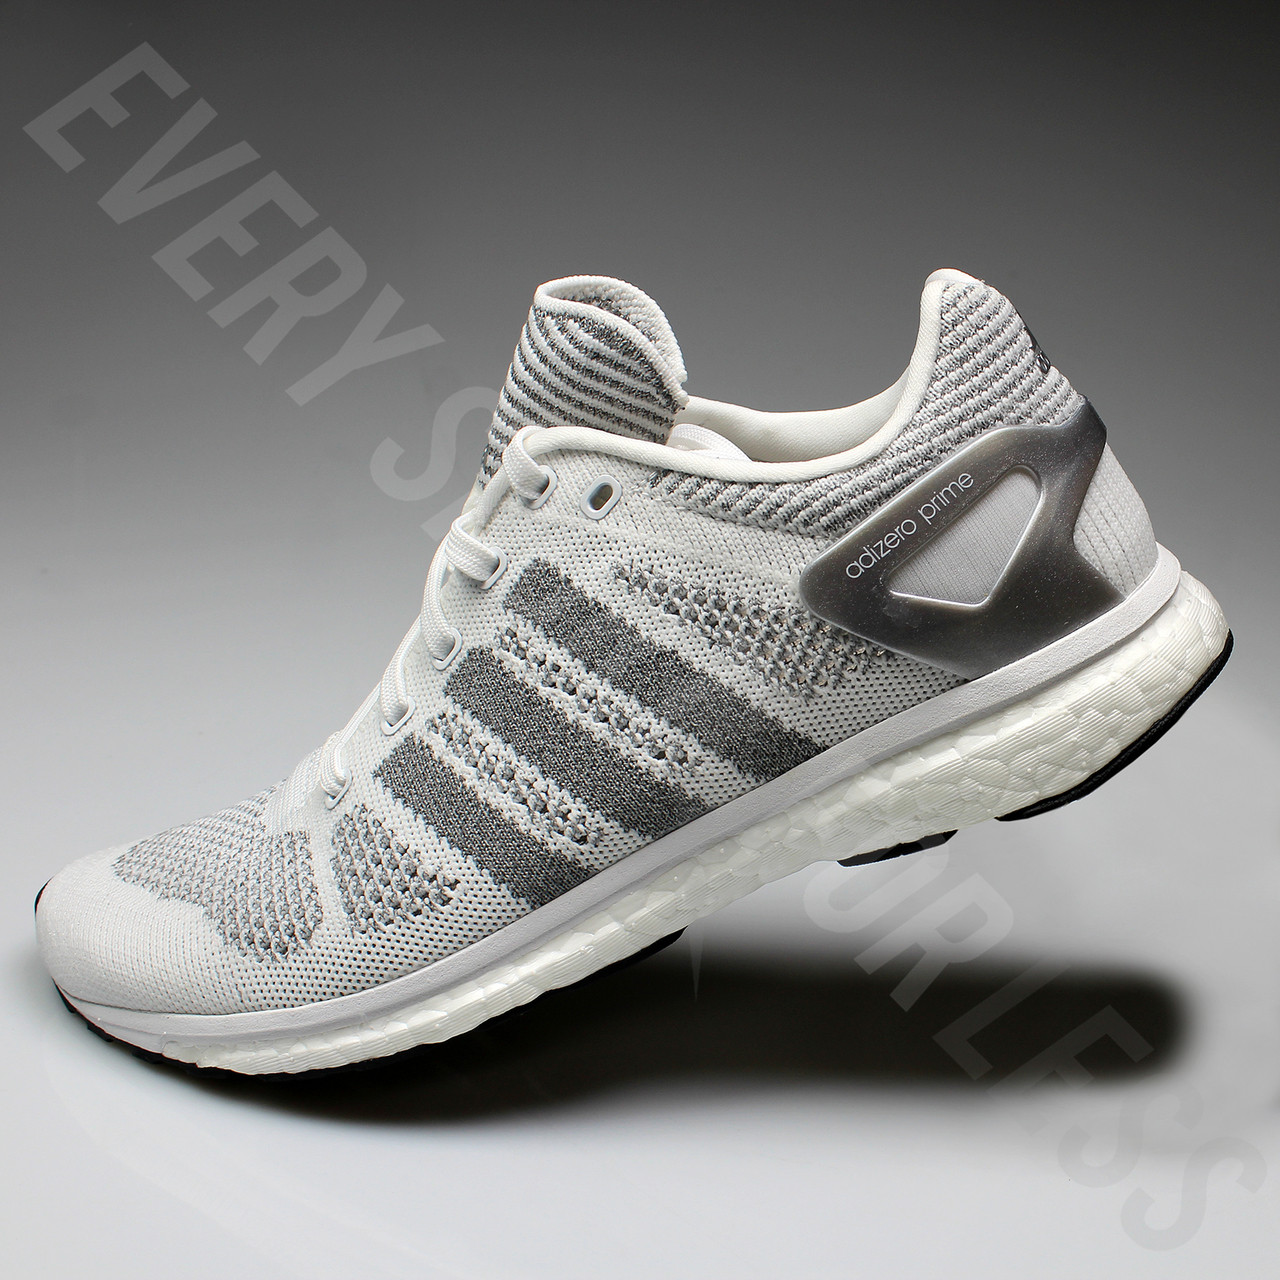 cheap for discount bd730 eff54 ... Adidas Adizero Primeknit Limited Edition Mens Running Shoes BB4919